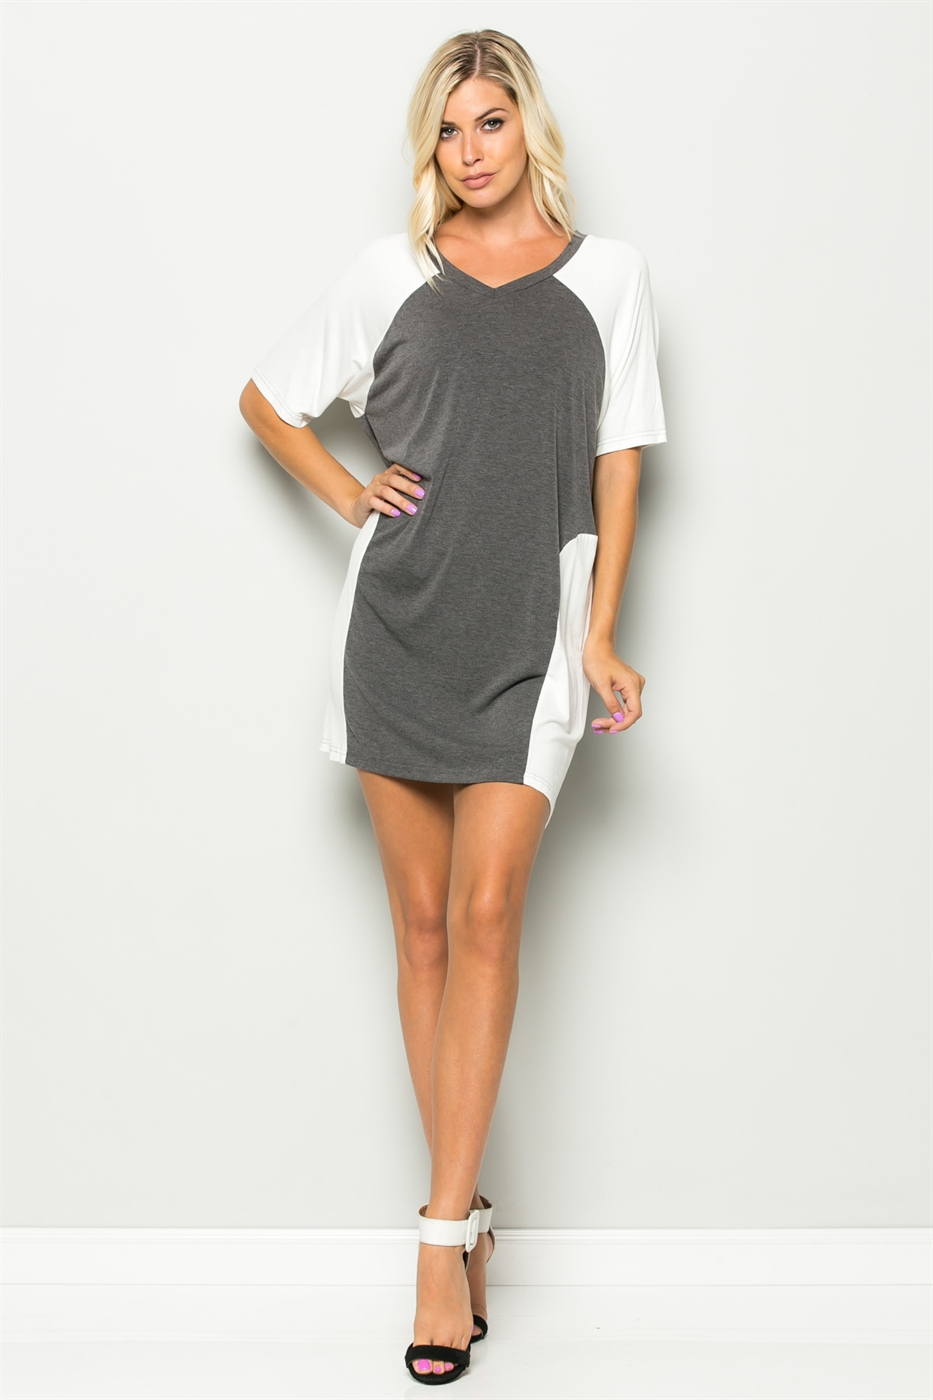 SCOOP NECK COLORBLOCK DRESS - orangeshine.com